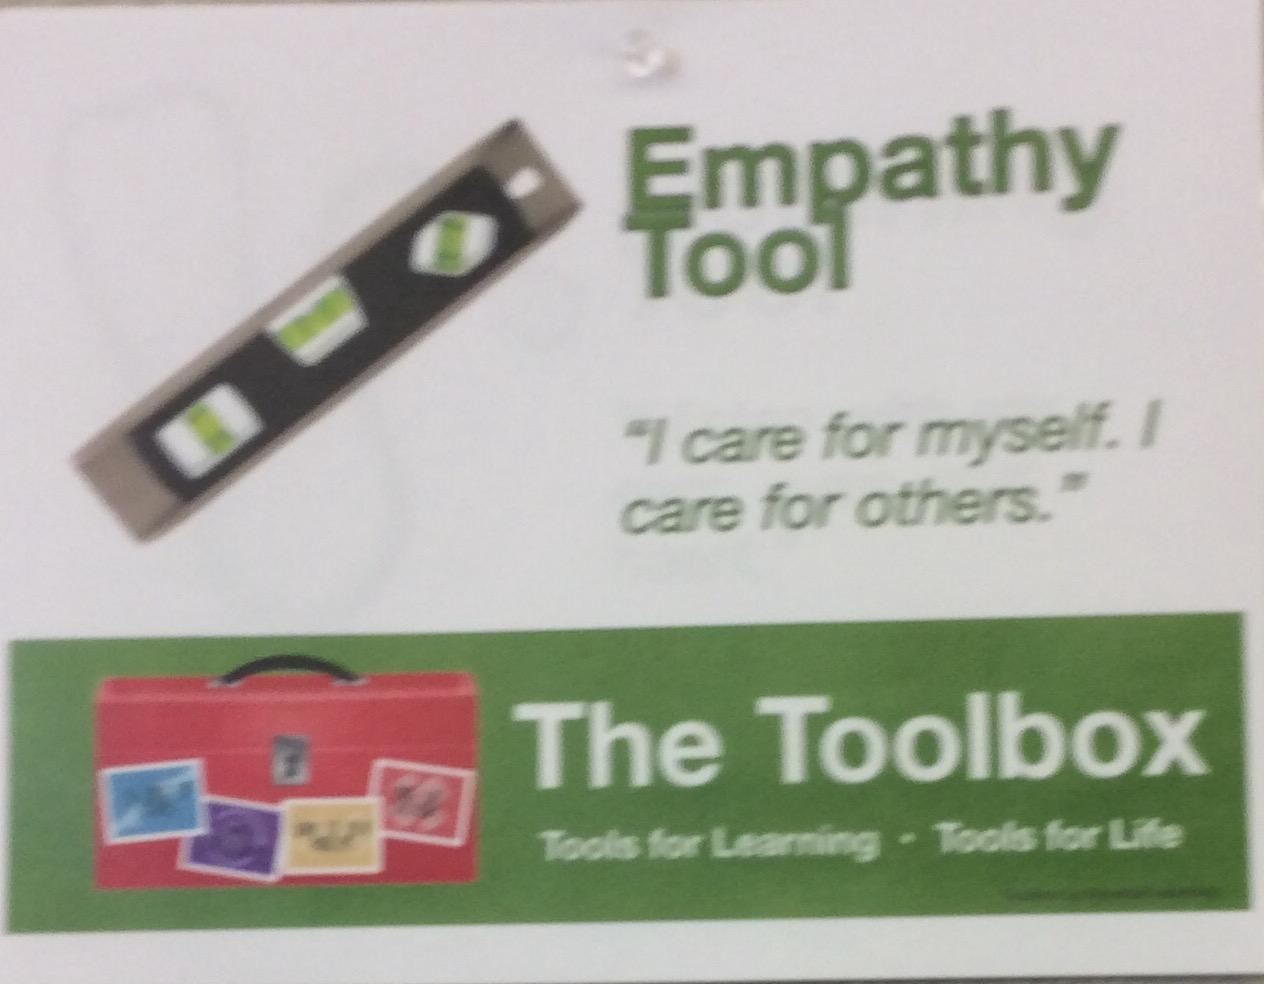 Empathy Tool Sign - I care for myself. I care for others.